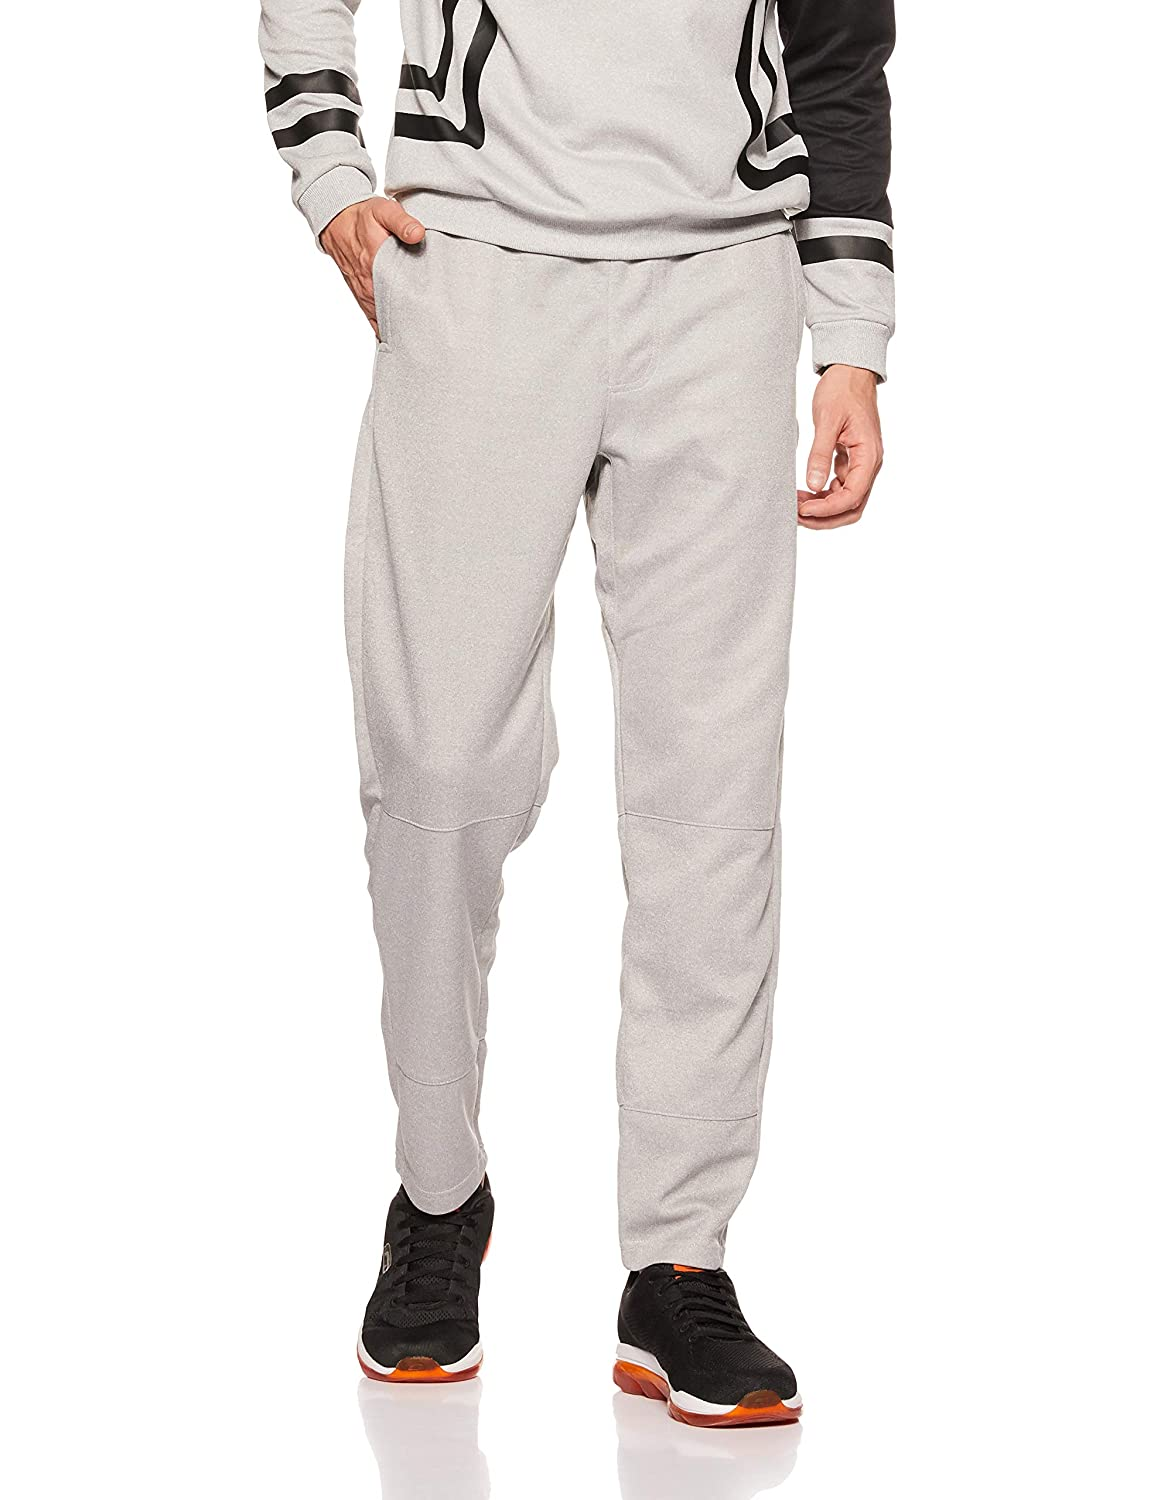 For 499/-(75% Off) 75%Off : Men's Joggers by Tiger Shroff at Rs 499/- All Sizes available at Amazon India